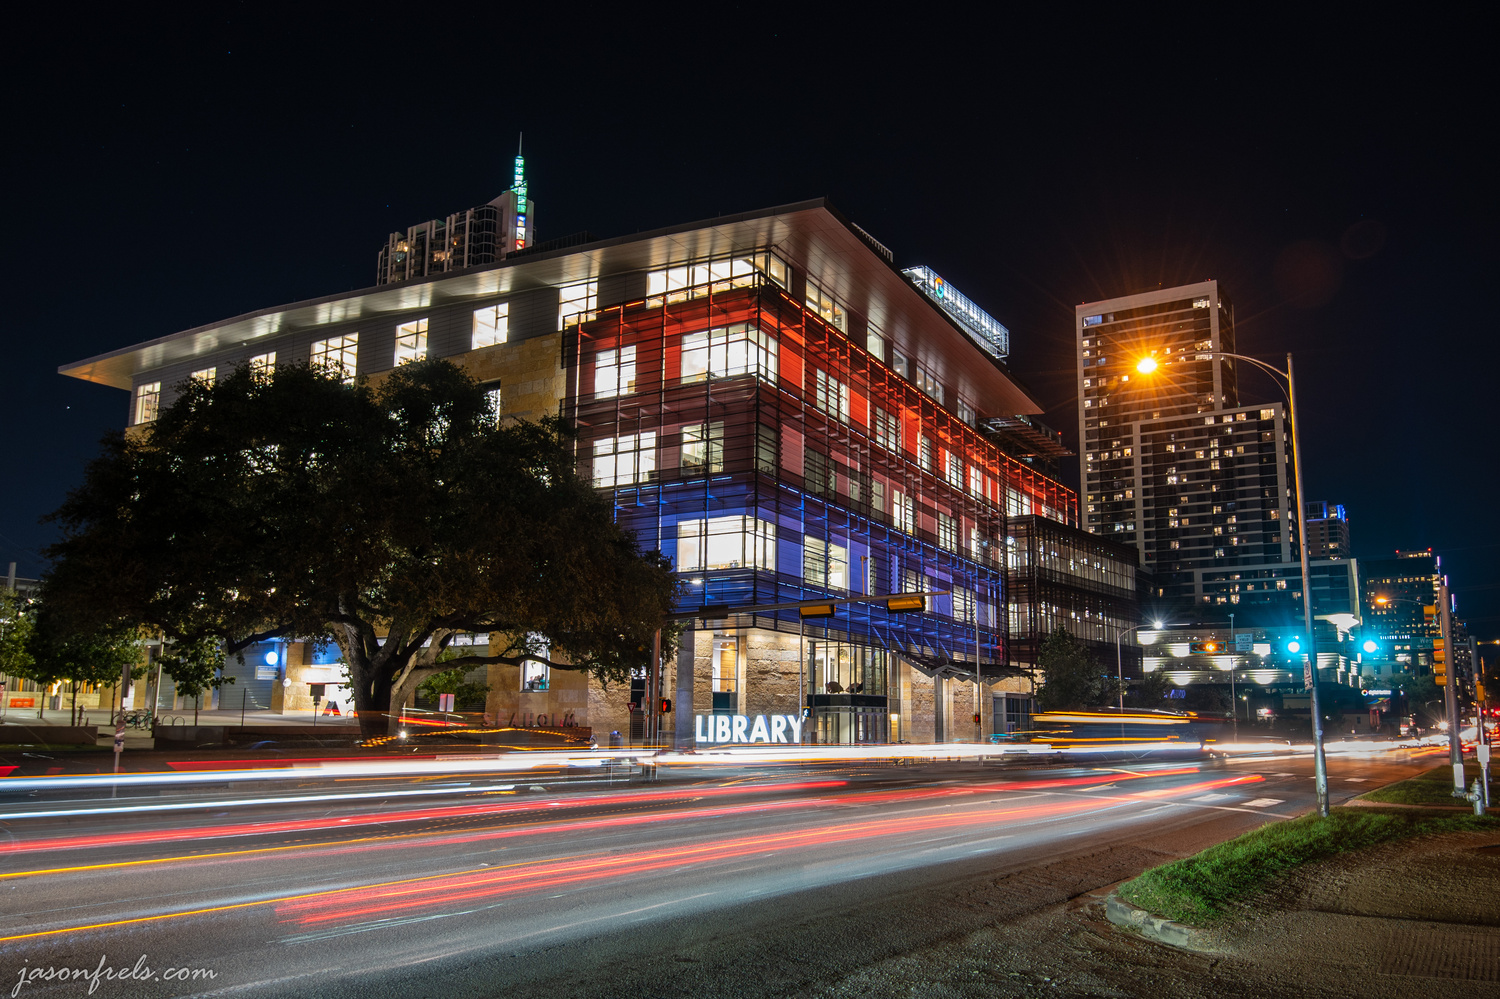 Austin Central Library at Night by Jason Frels